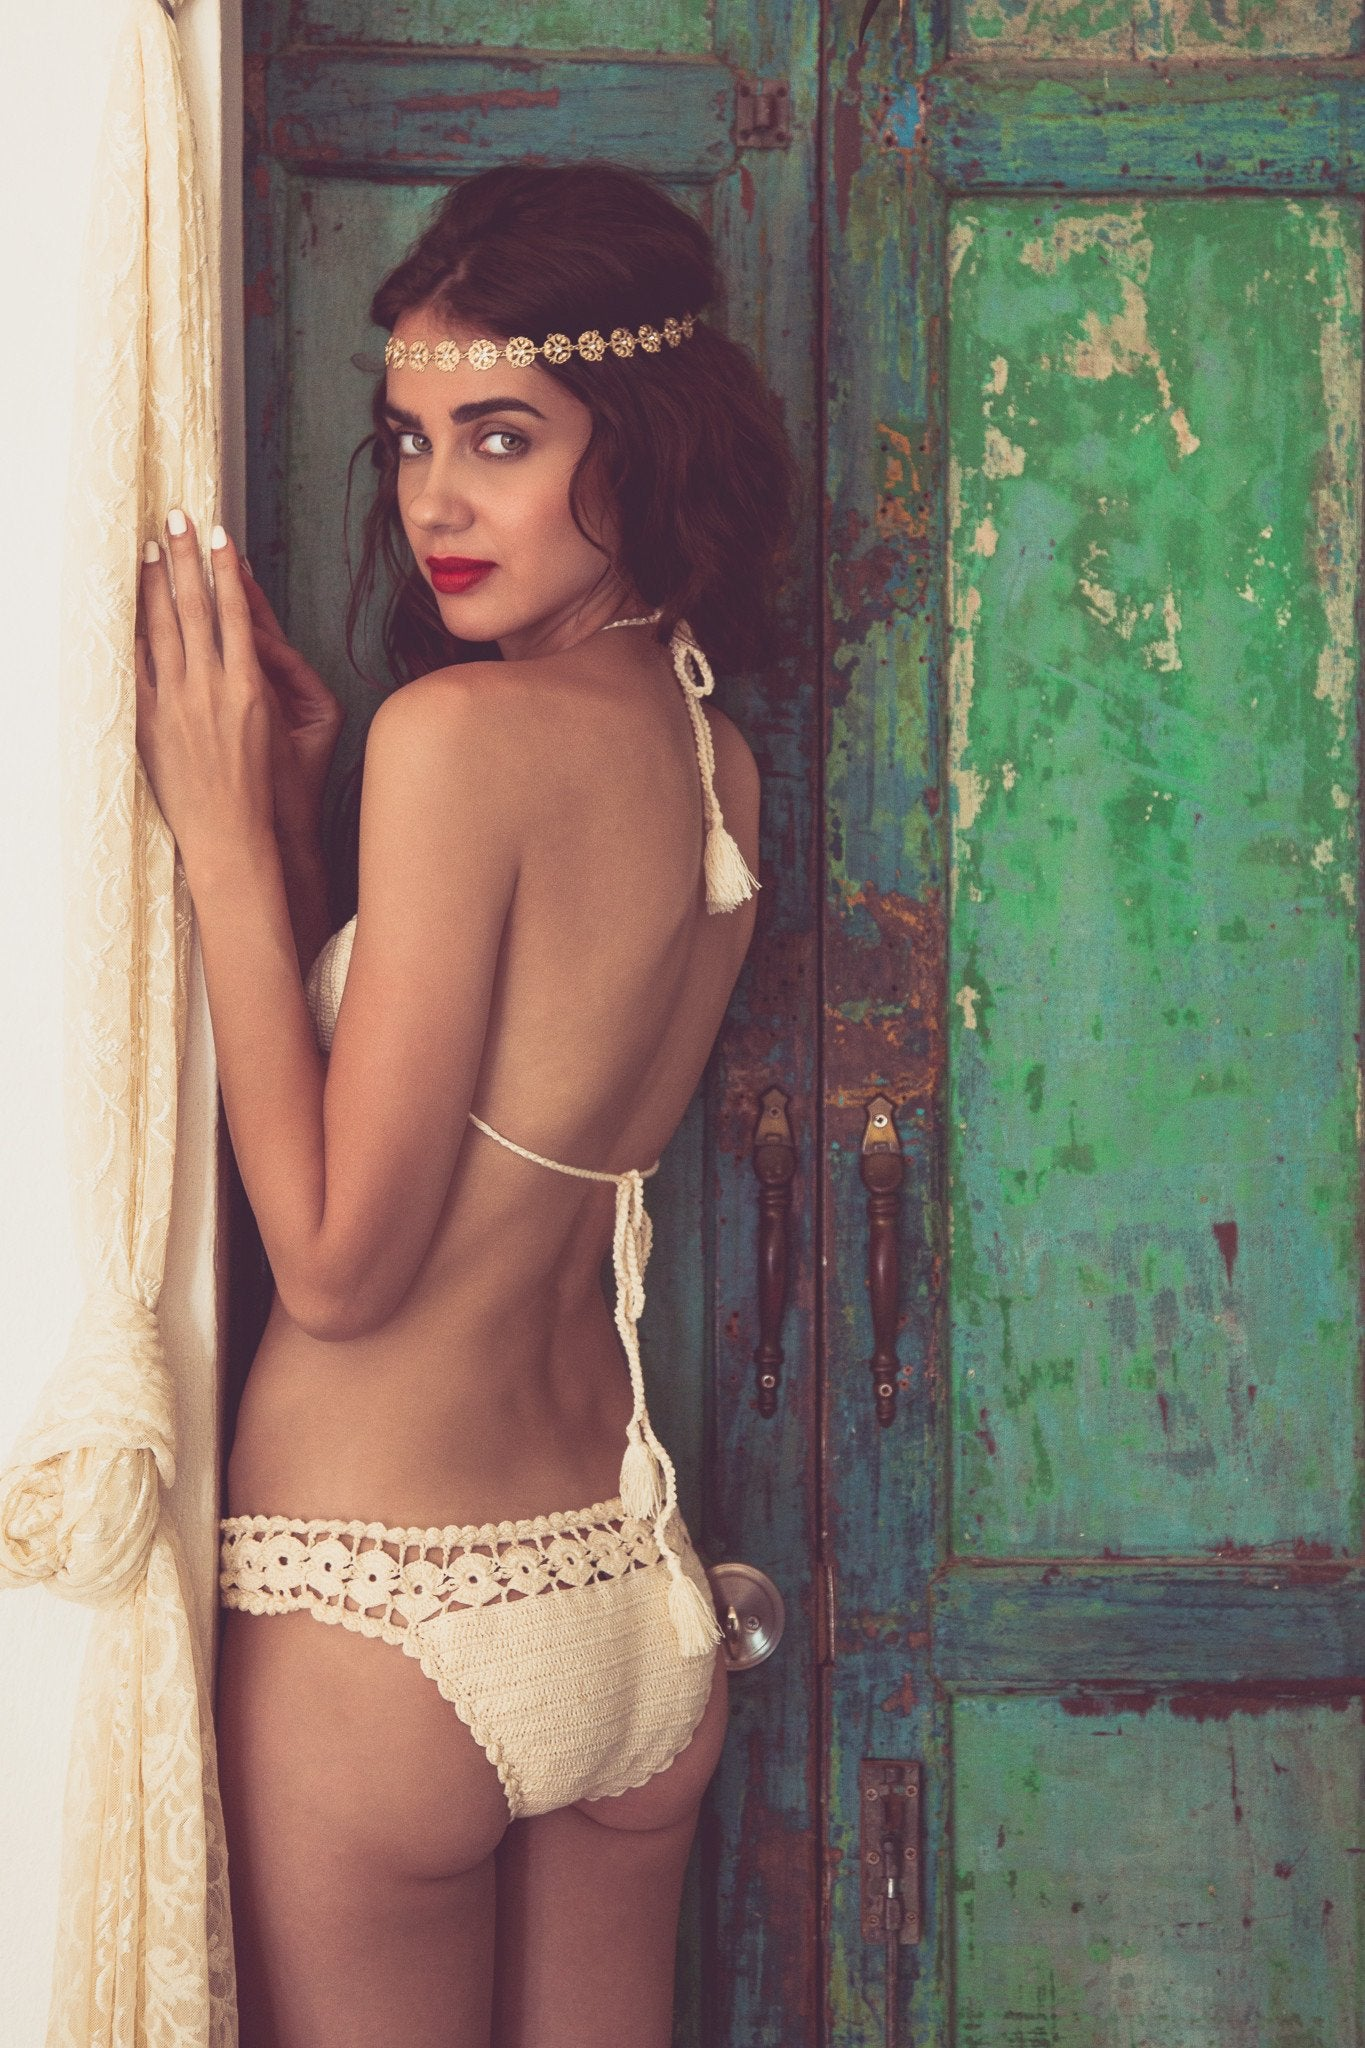 Geometry Crochet Bottom | Casablanca - Bikini Bottom by Mer Culture Swimwear Hong Kong